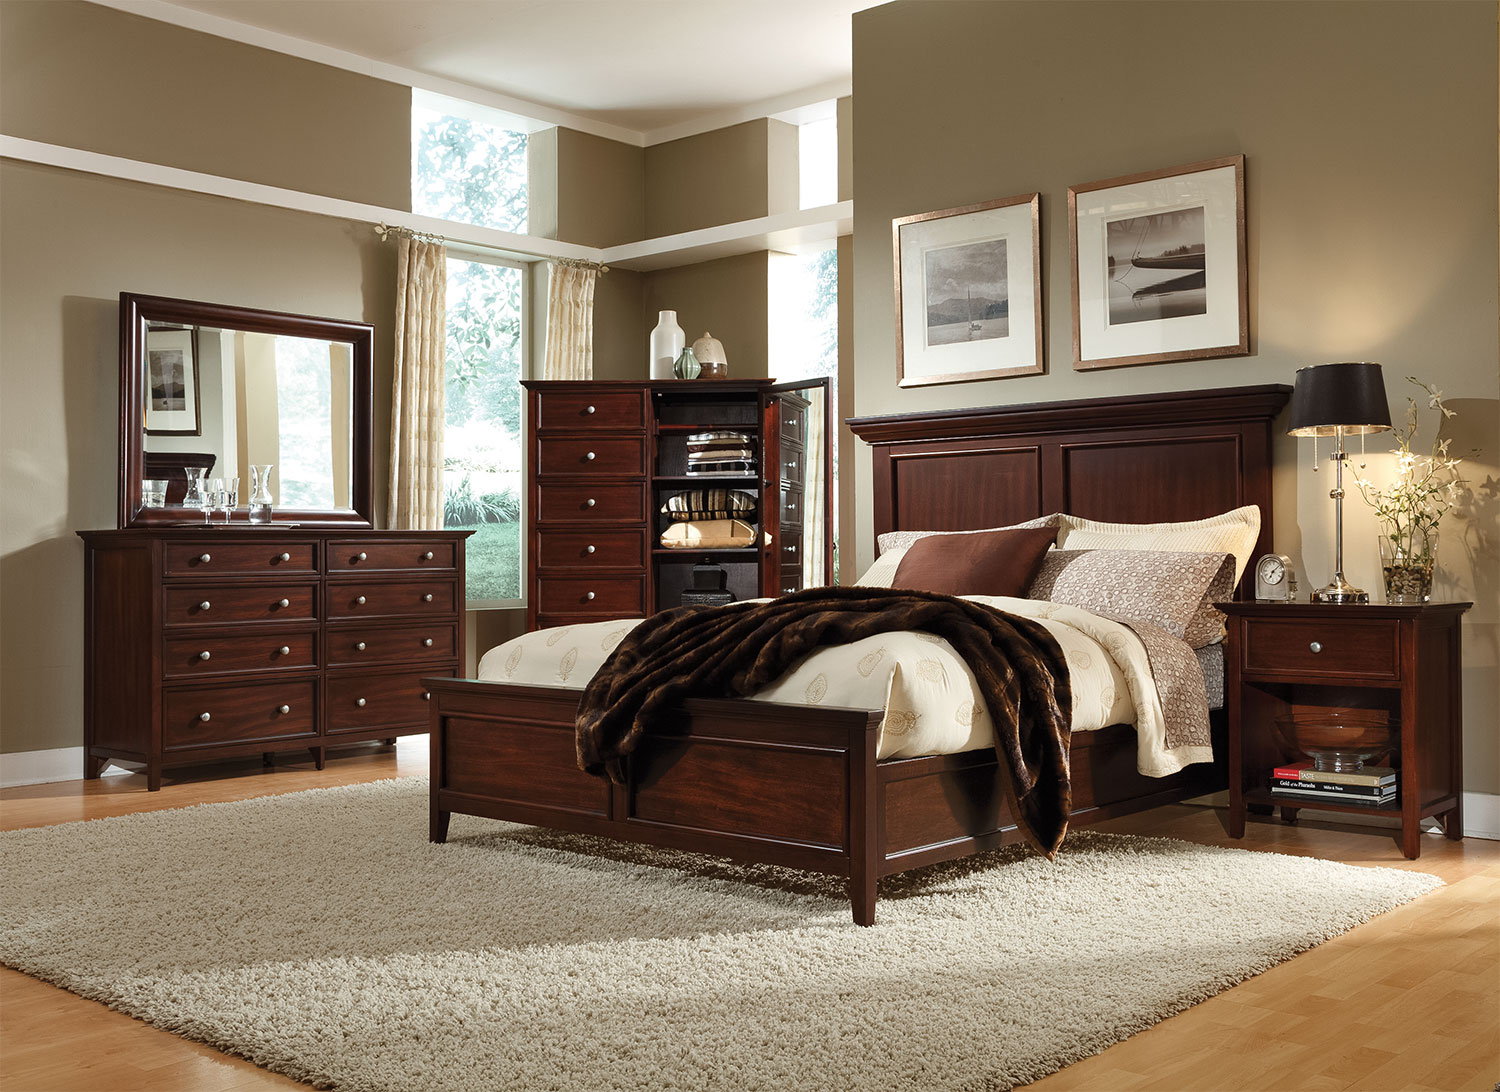 Ellsworth 4-Piece Queen Bedroom Set - Cherry